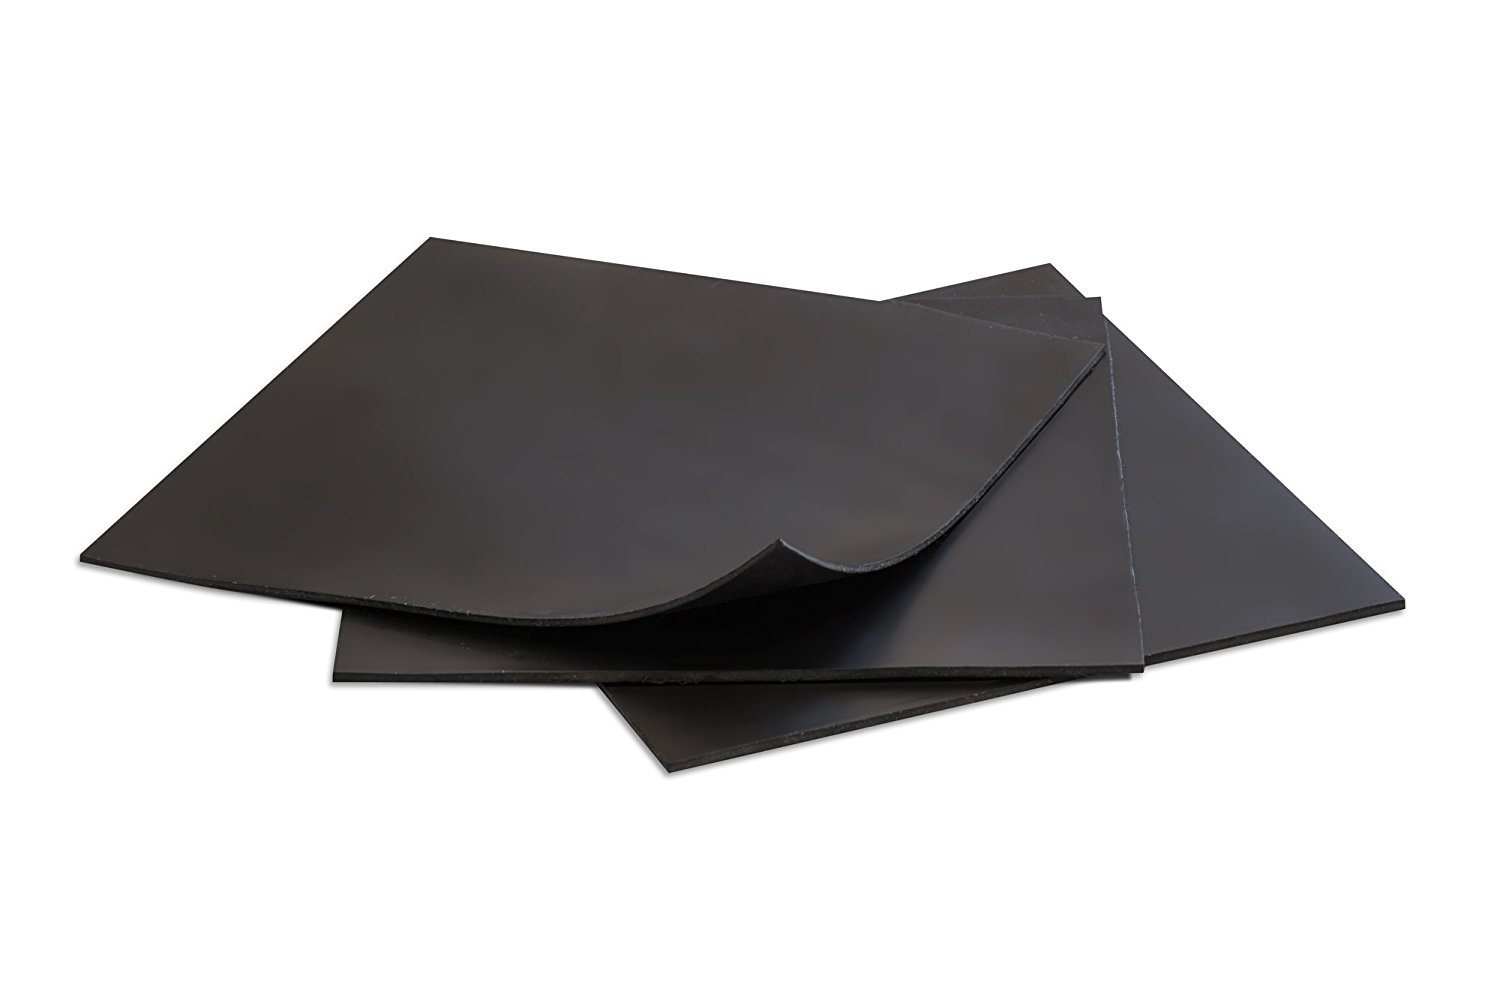 6 x 6 Square Pack of 3 Sterling Seal /& Supply 7530BLK.0312.6x6x3xAZ Teflon Sheet FDA Approved 1//32 Thick Dull Black